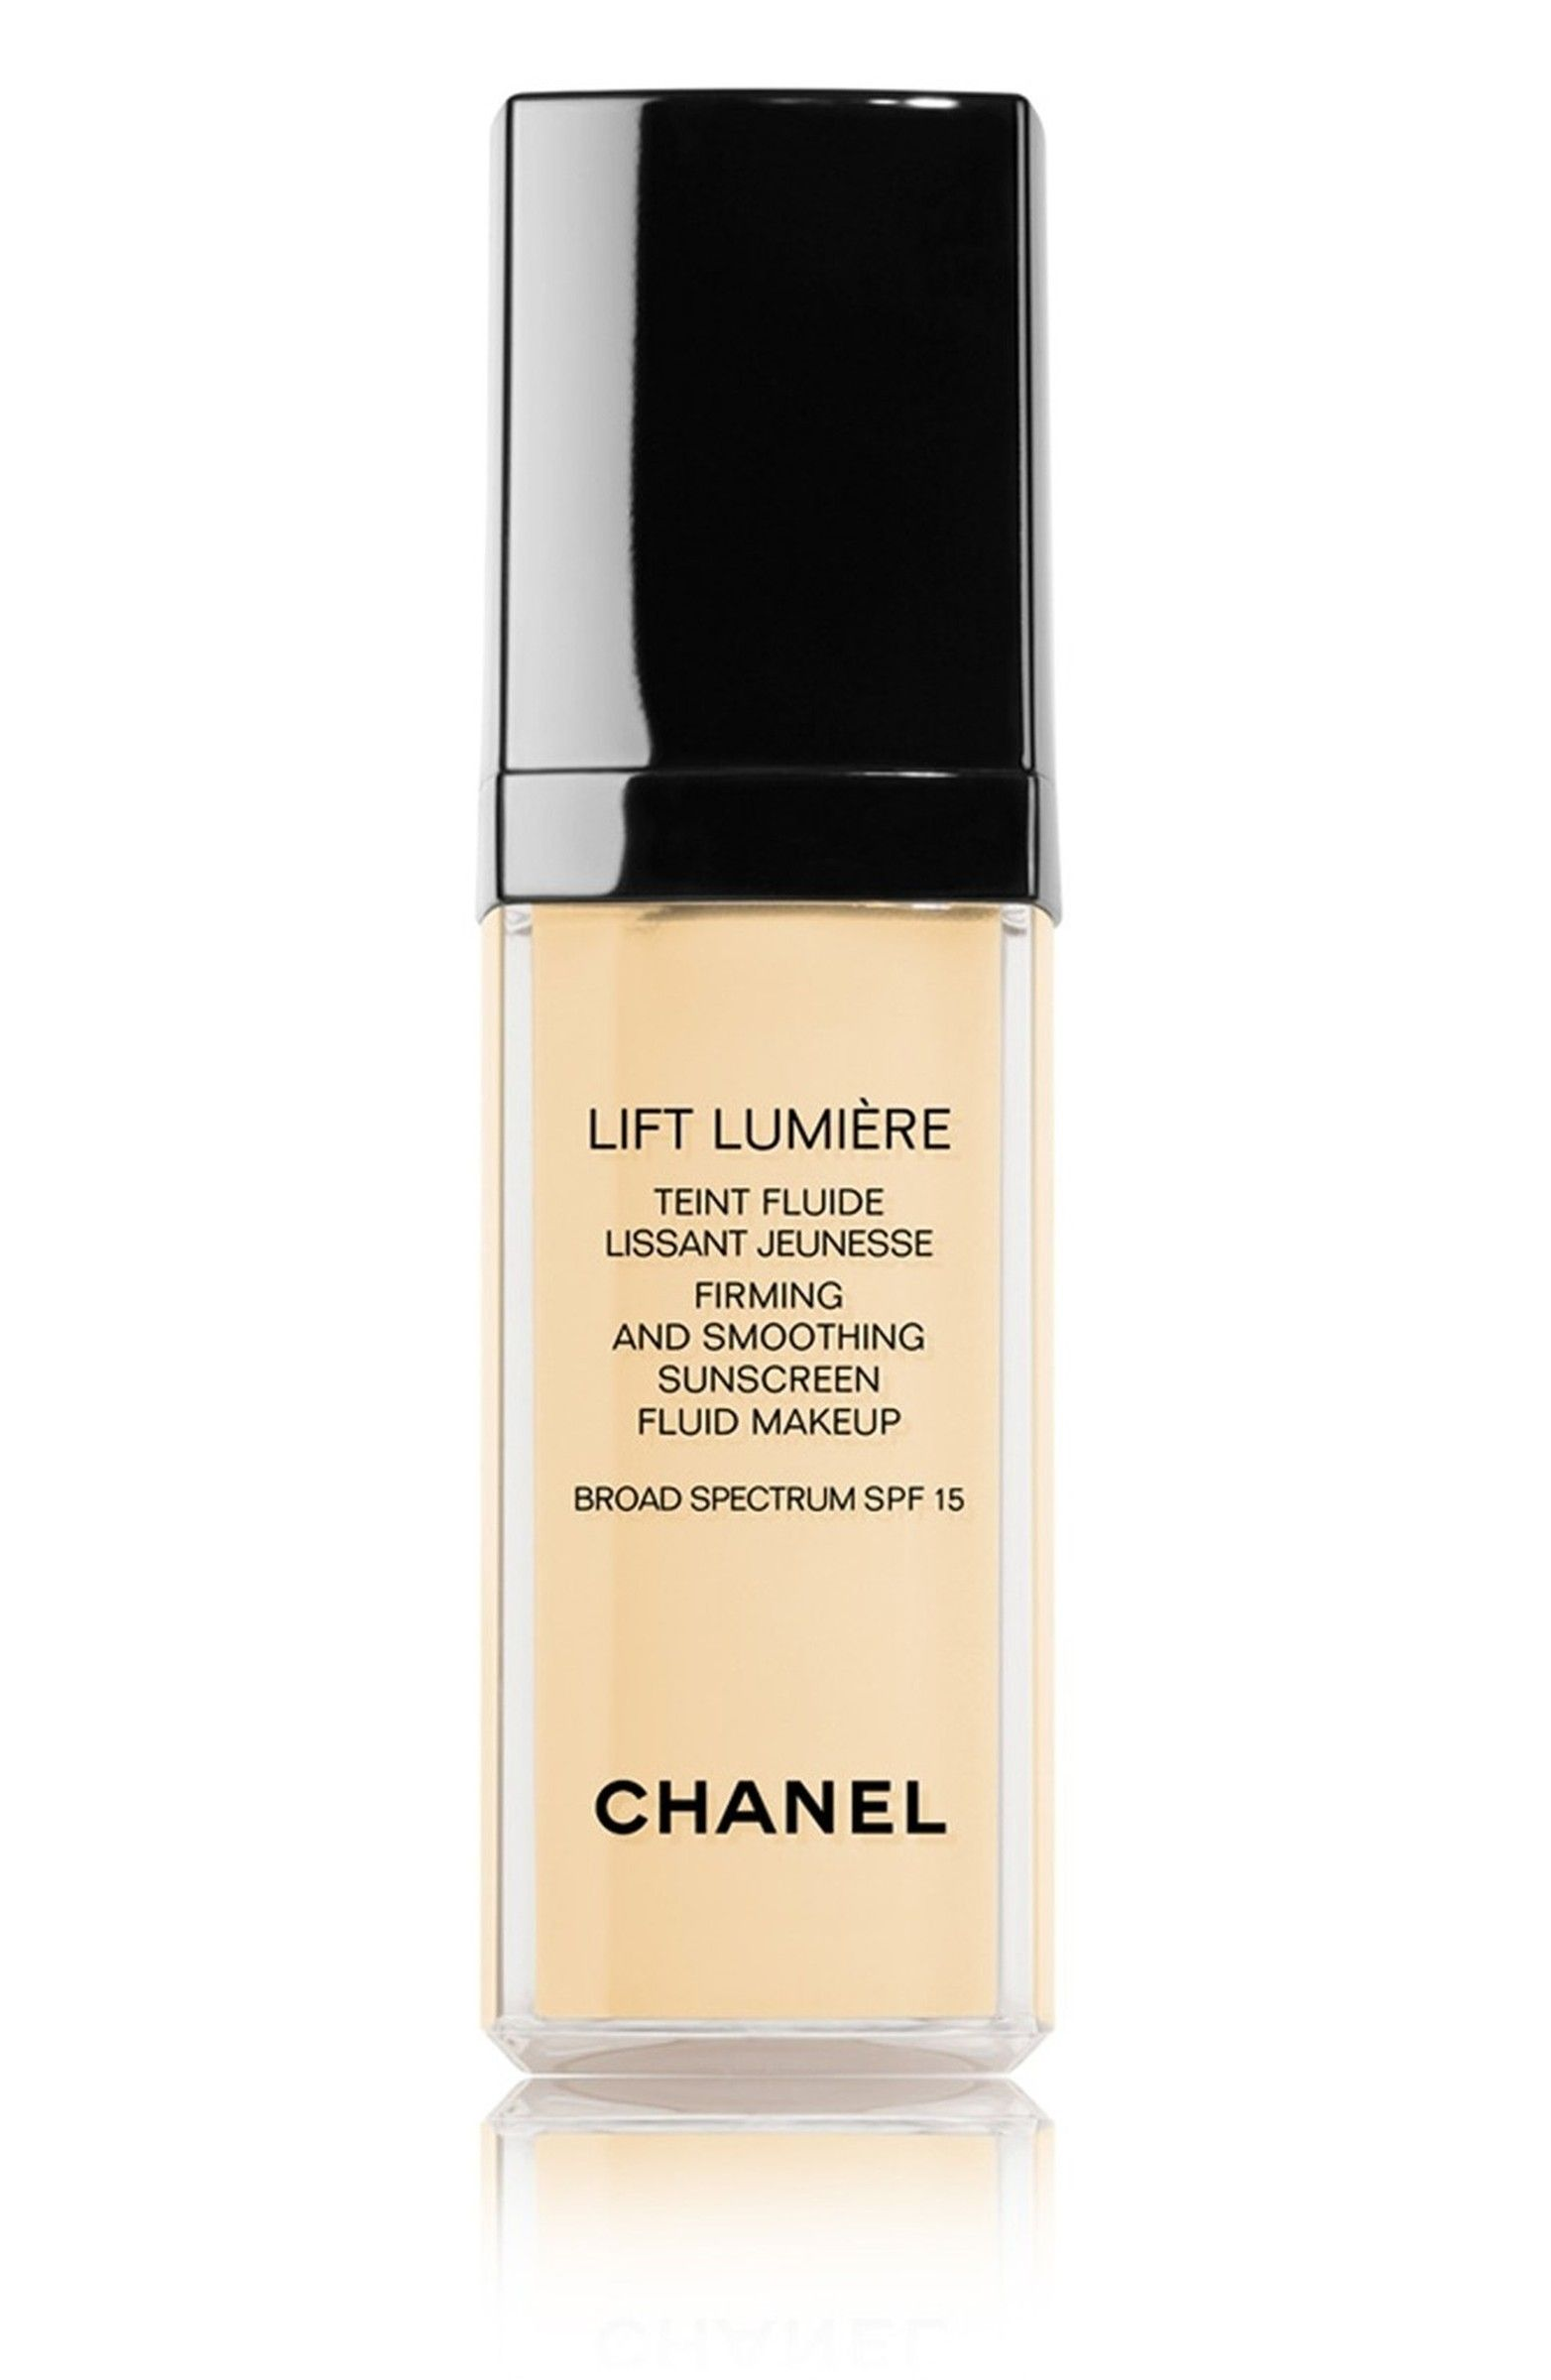 CHANEL LIFT LUMIÈRE Firming & Smoothing Sunscreen Fluid